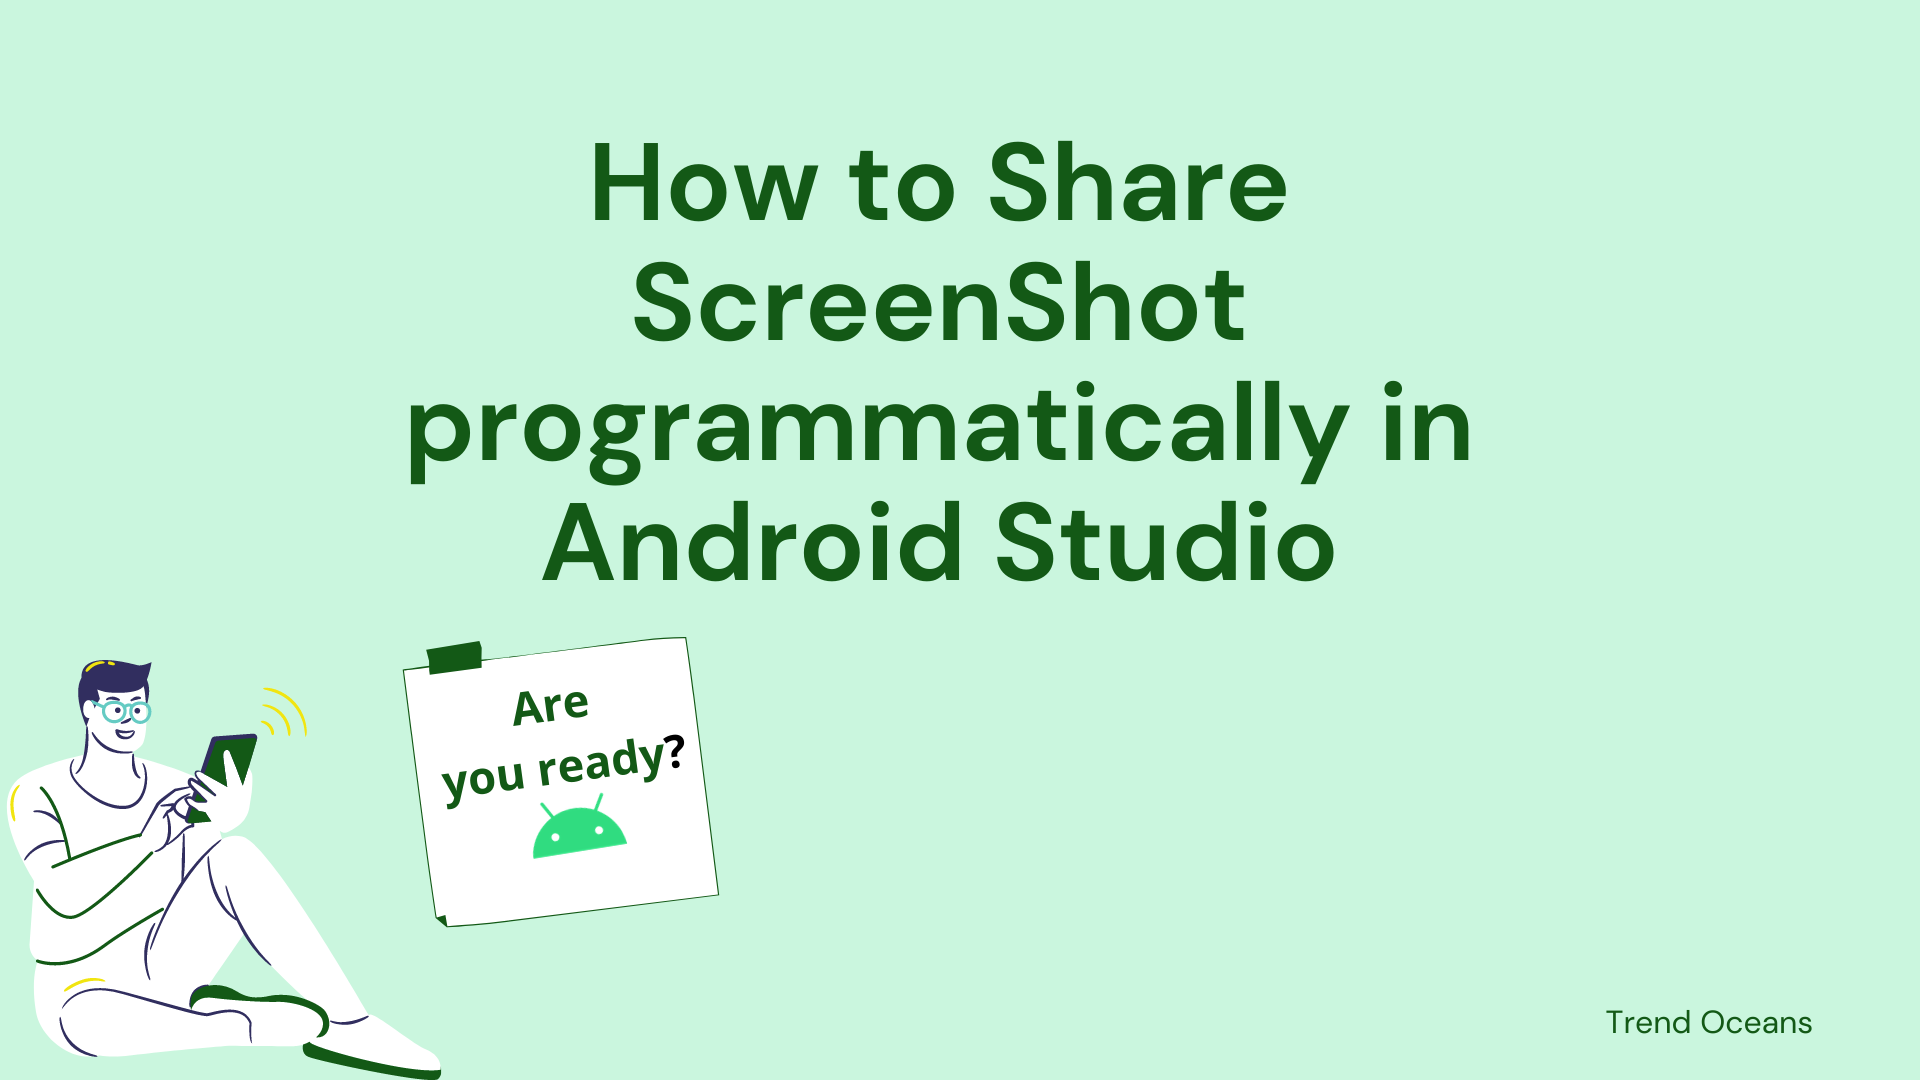 How to Share ScreenShot programmatically in Android Studio